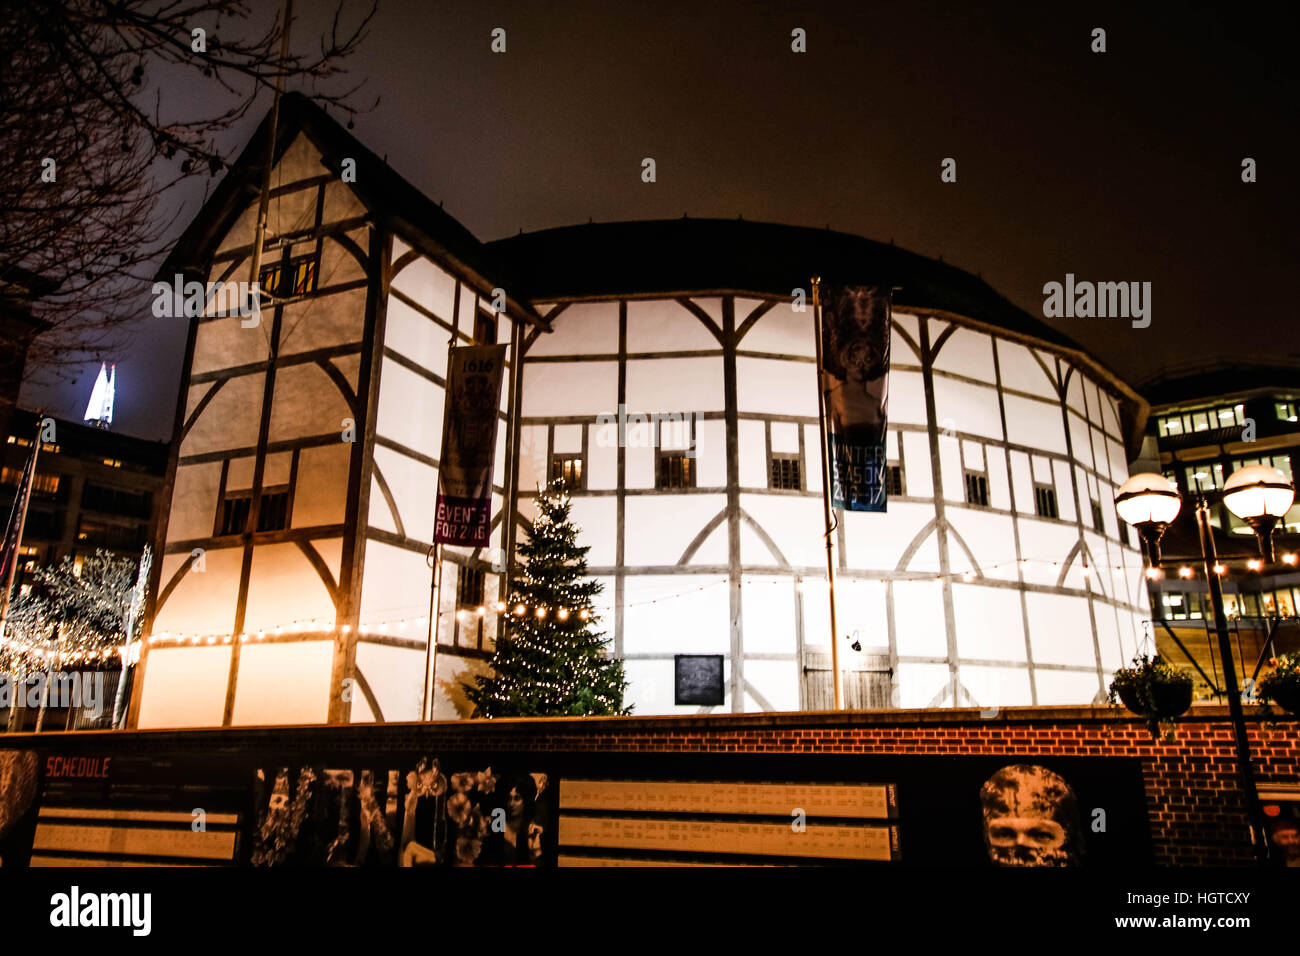 the importance of the globe theater in shakespeares career Shakespeare's globe theatre 21 new globe walk, southwark, london synopsis: iago, an evil lieutenant, gets revenge on his superior officer, othello, by making him murderously suspicious of his wife.